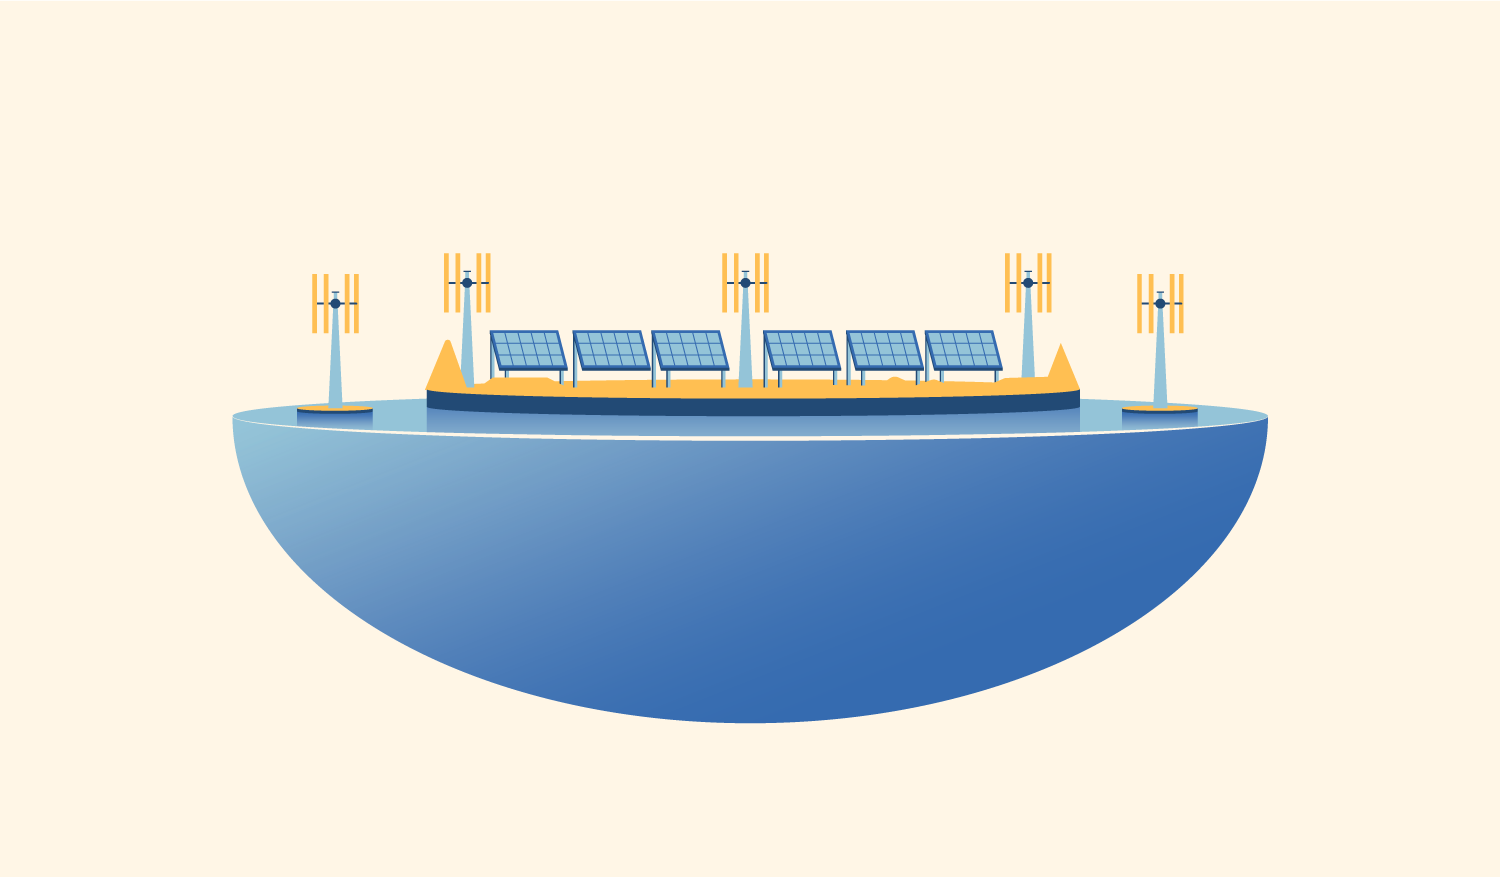 A floating city platform with solar panels and wind turbines.